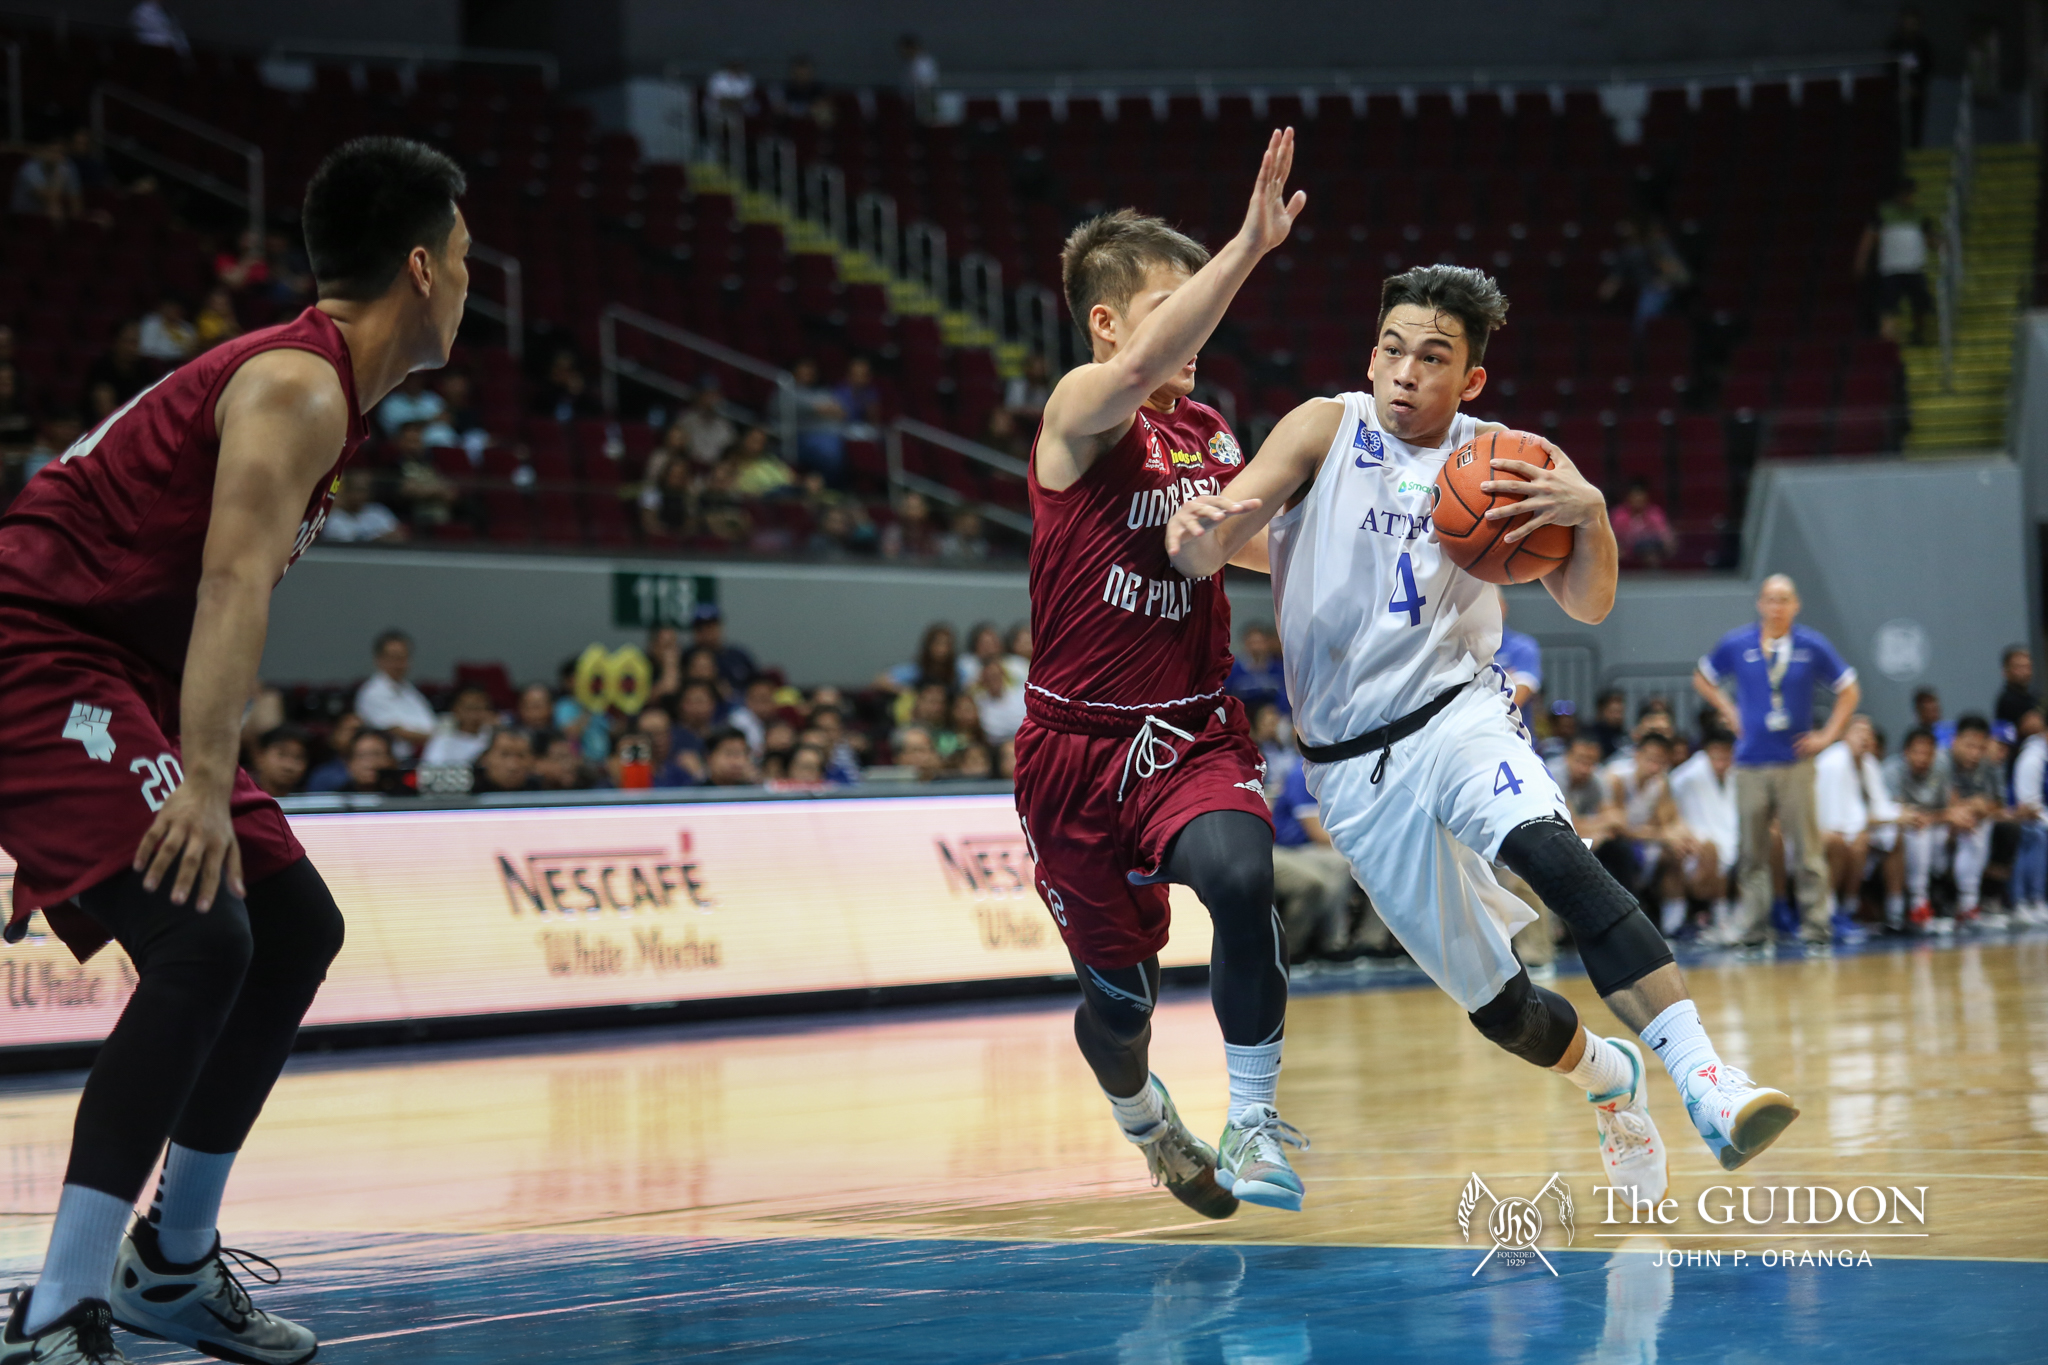 Ateneo Blue Eagles Drop Their Second Straight Against The